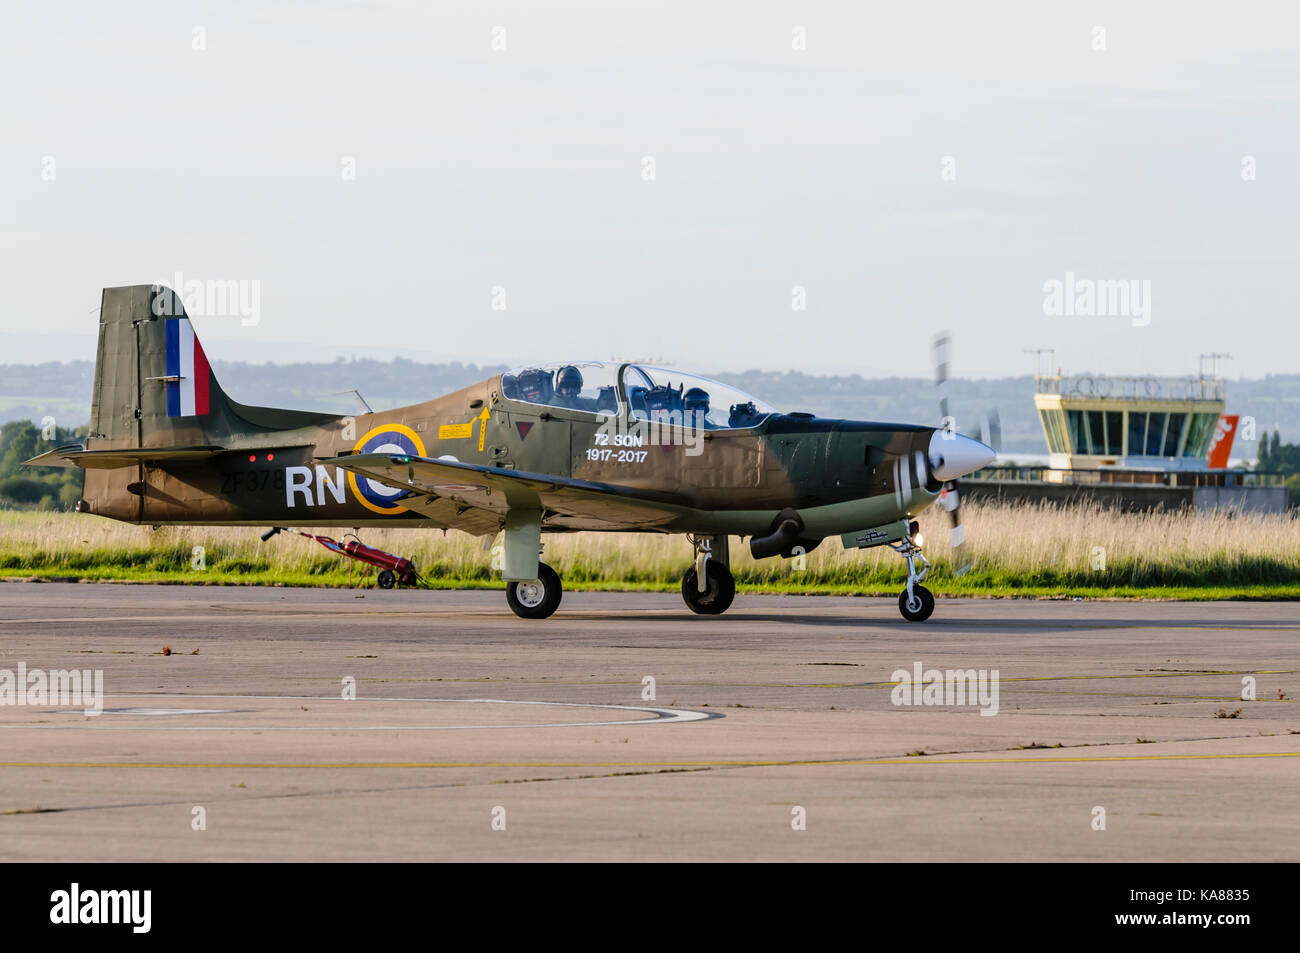 RAF Aldergrove, Northern Ireland. 25/09/2017 - Two Tucano training aircraft from 72 (R) Squadron fly into RAF Aldergrove - Stock Image